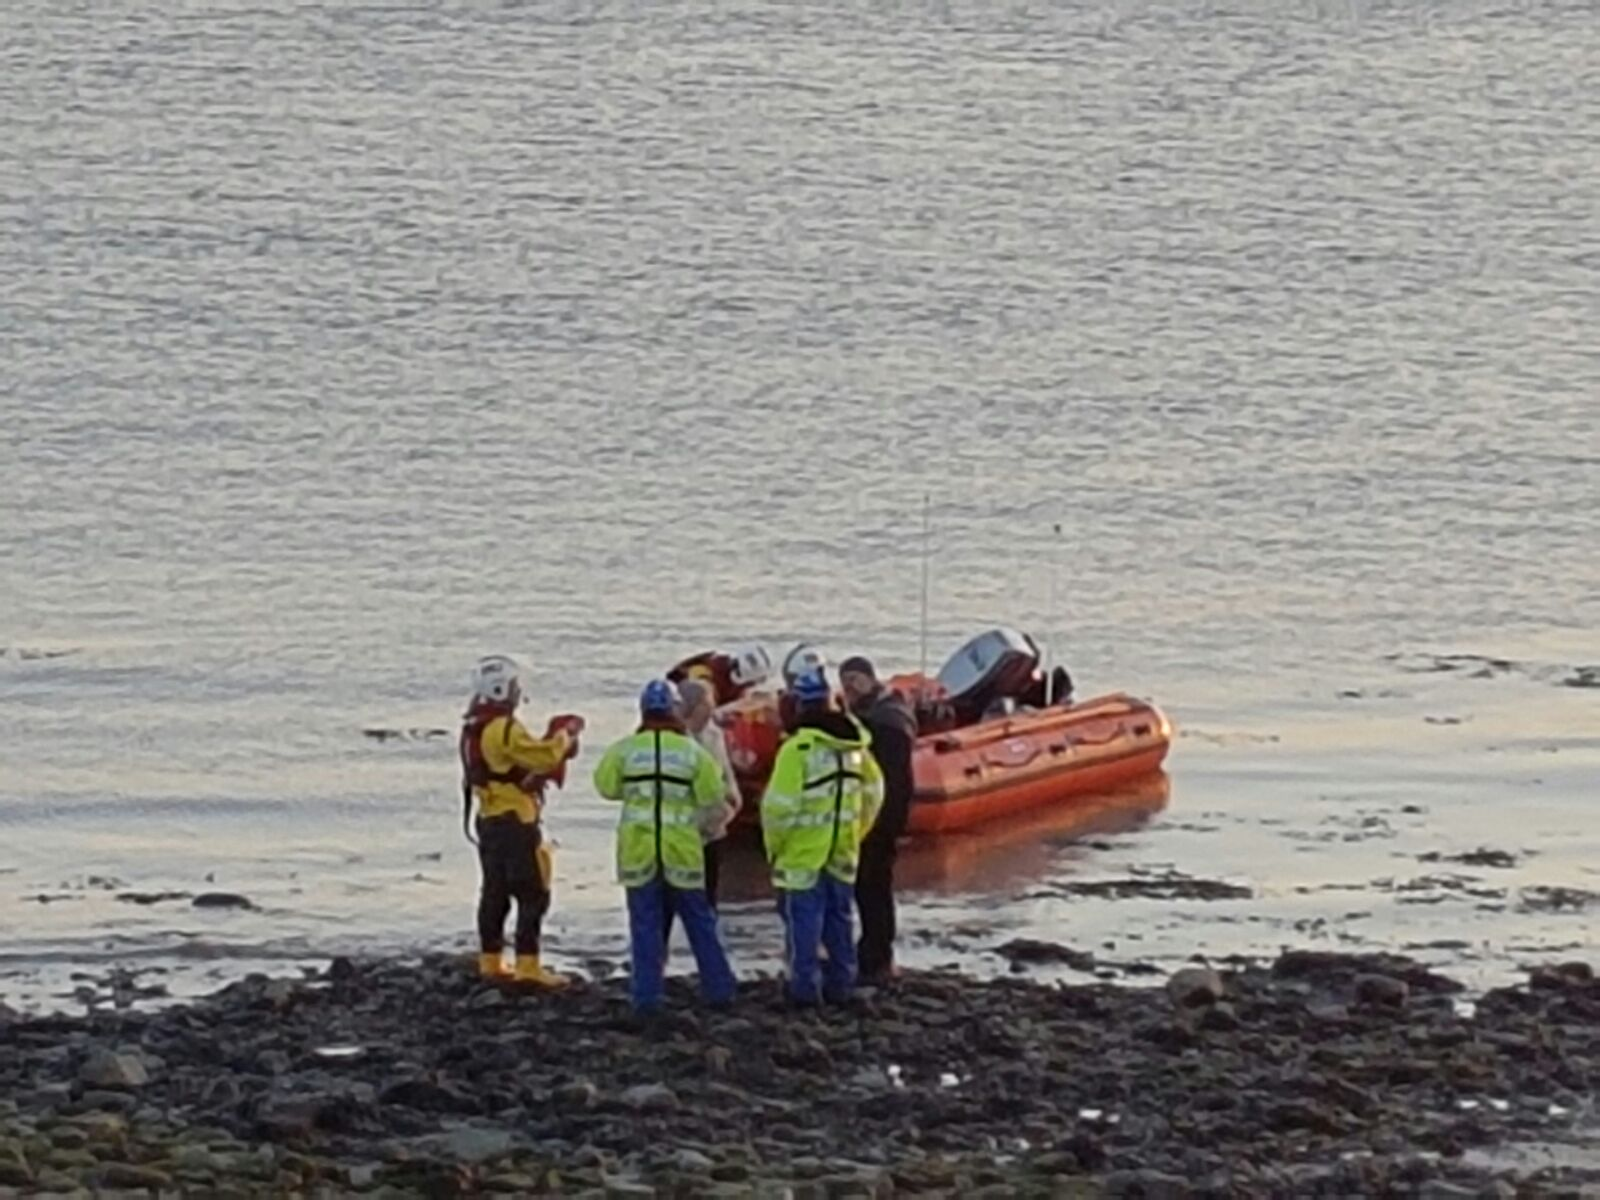 People being brought to shore